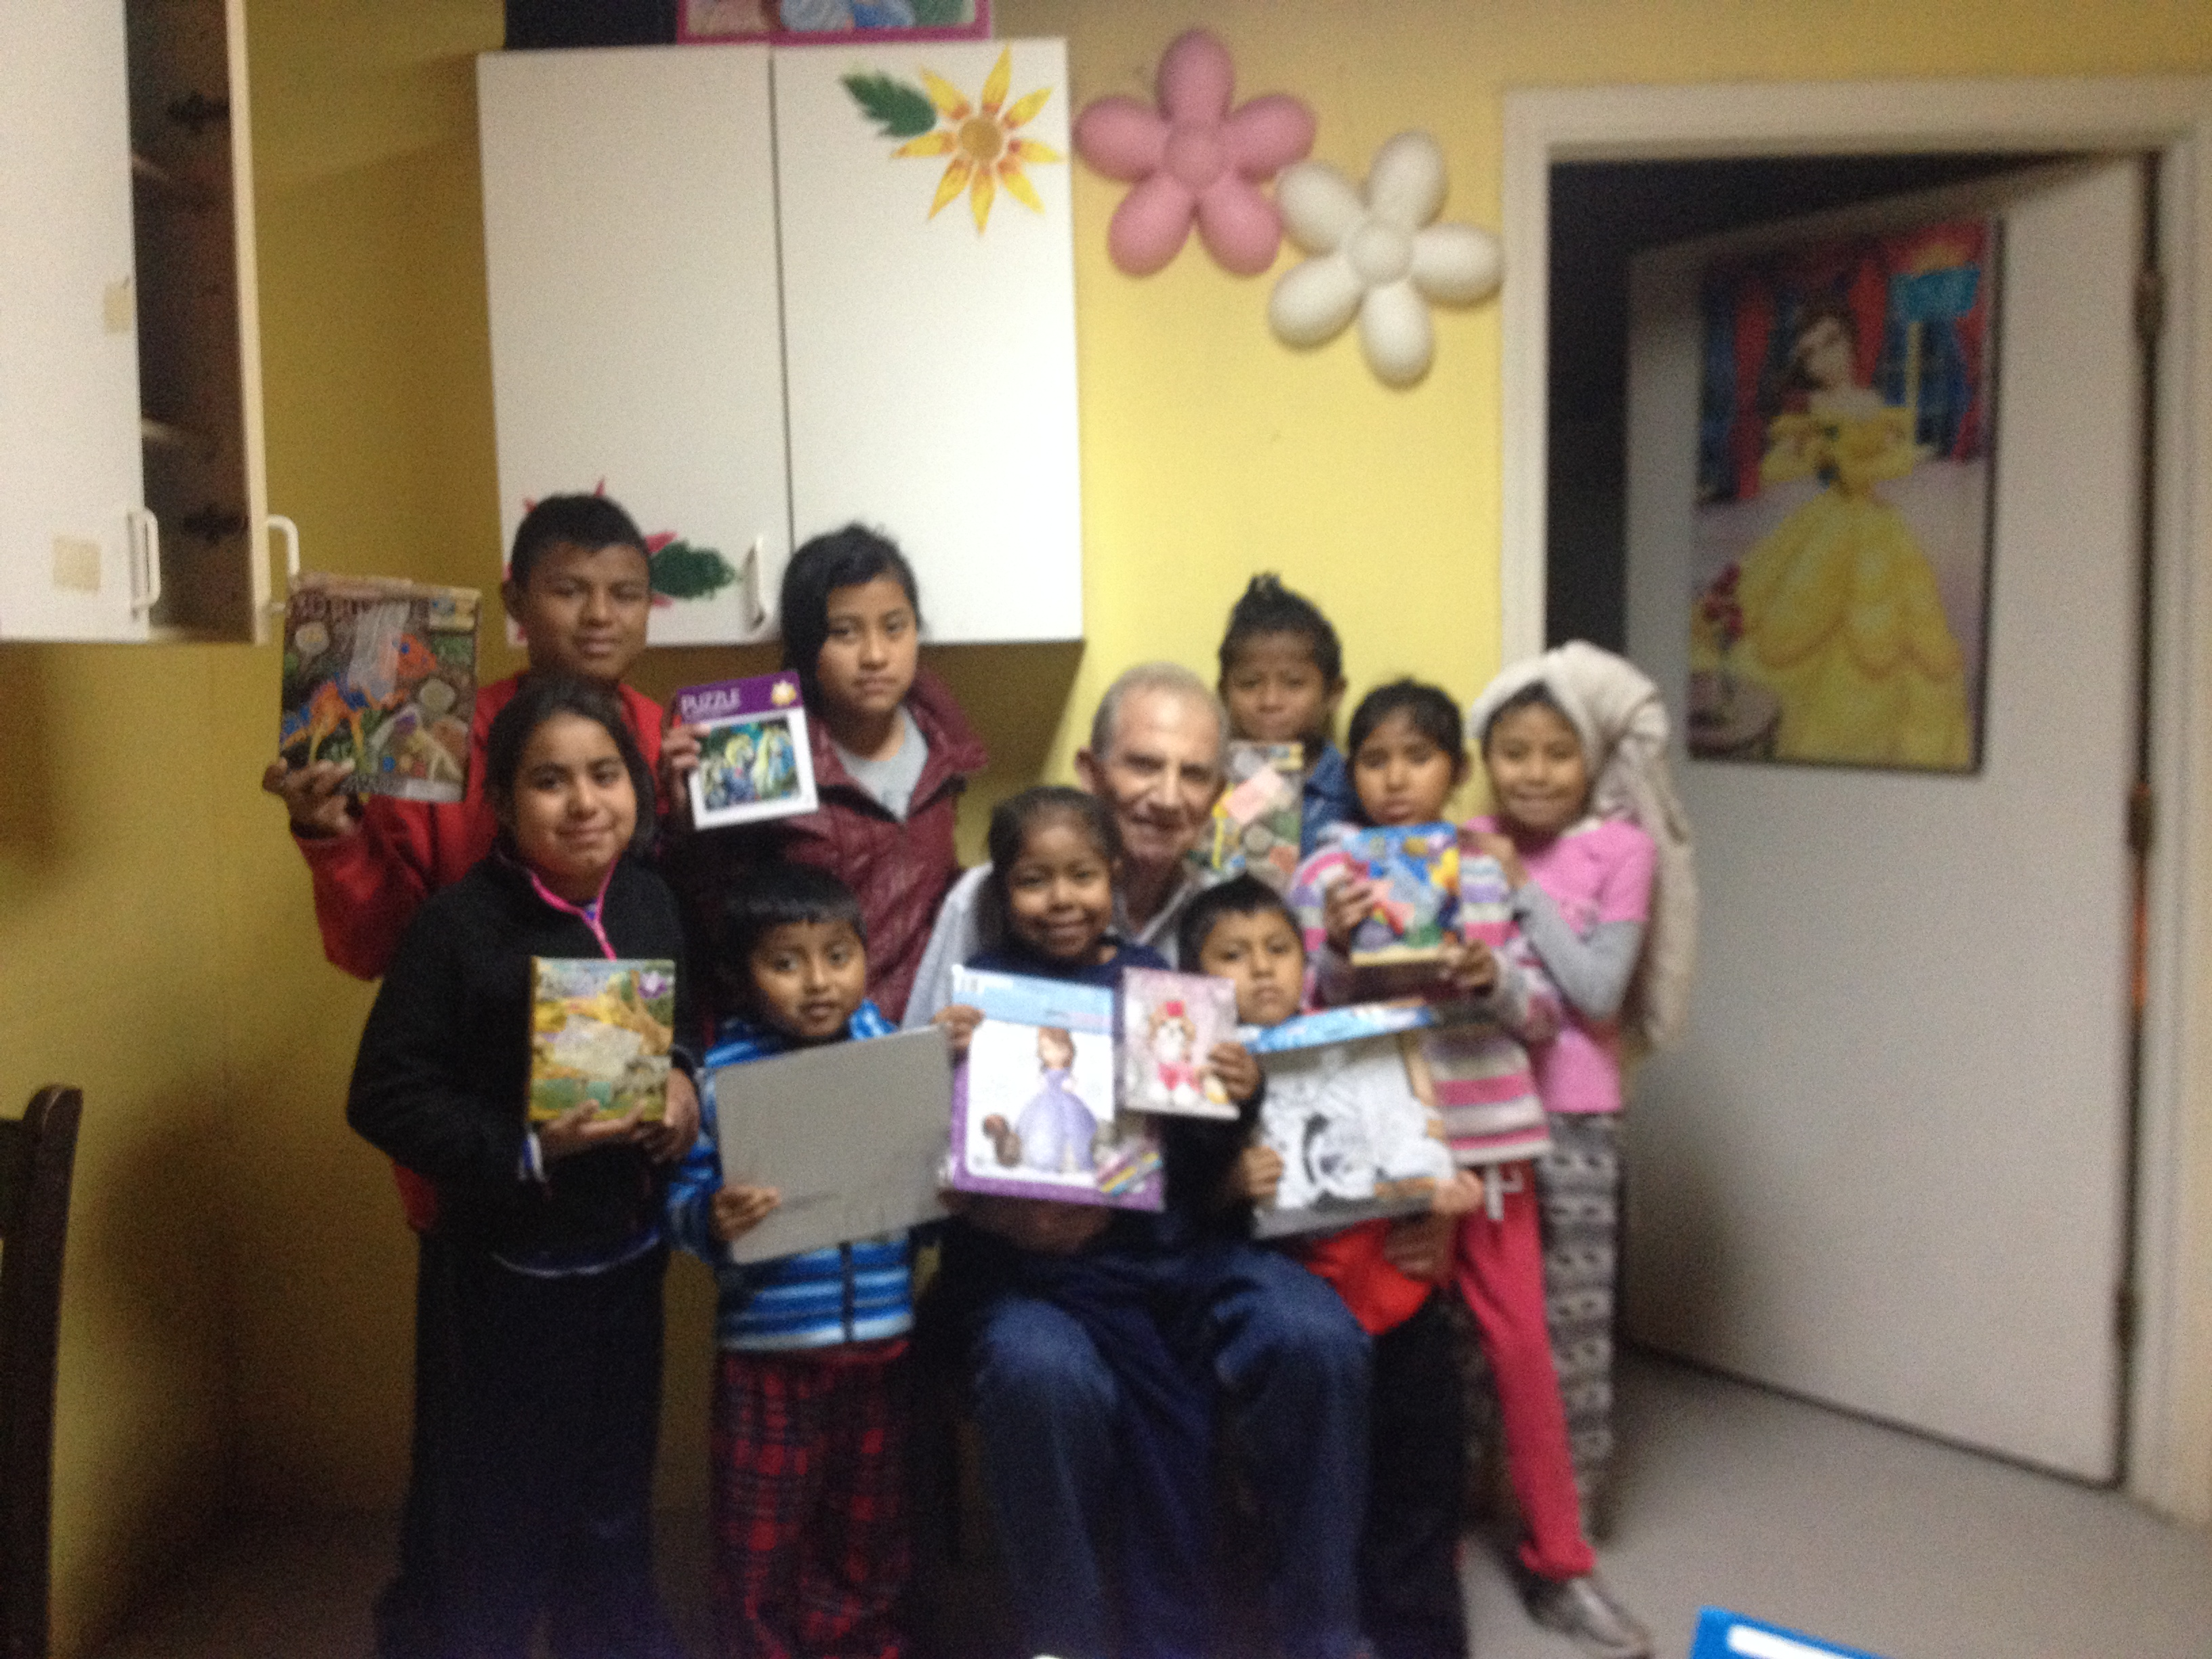 Don with the dialysis children